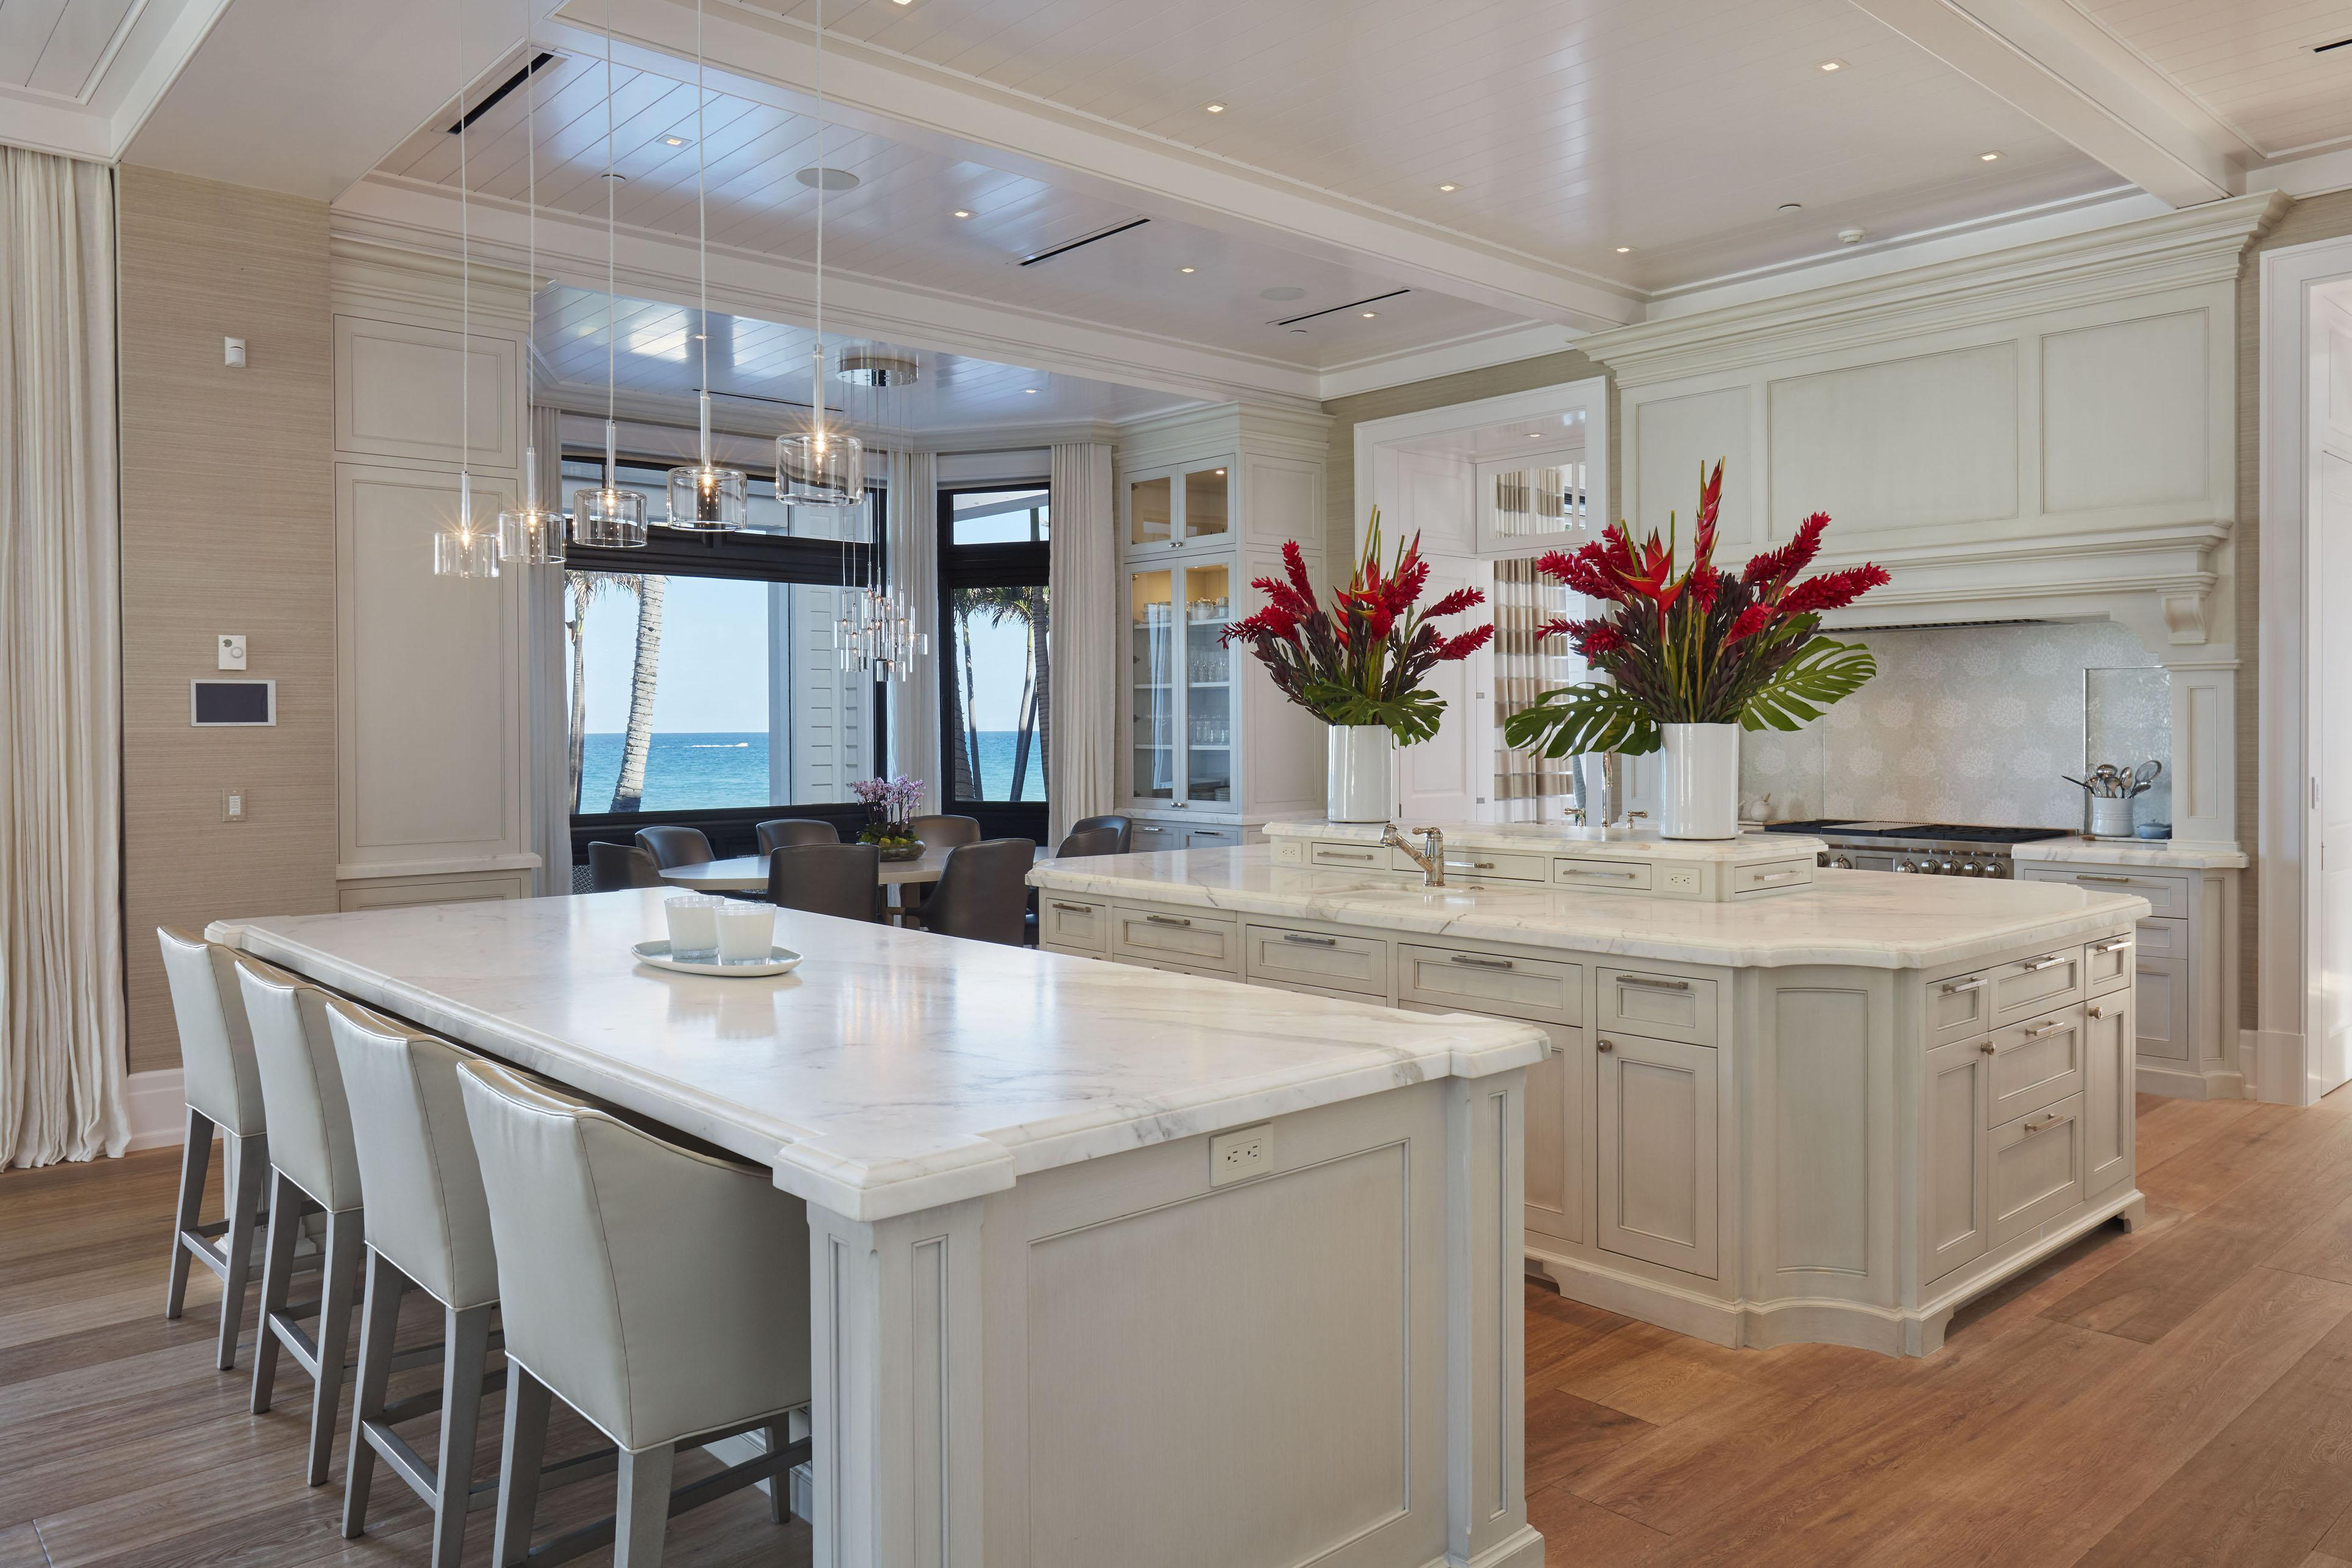 Beautiful kitchen includes a number of tables to eat at and stunning counters